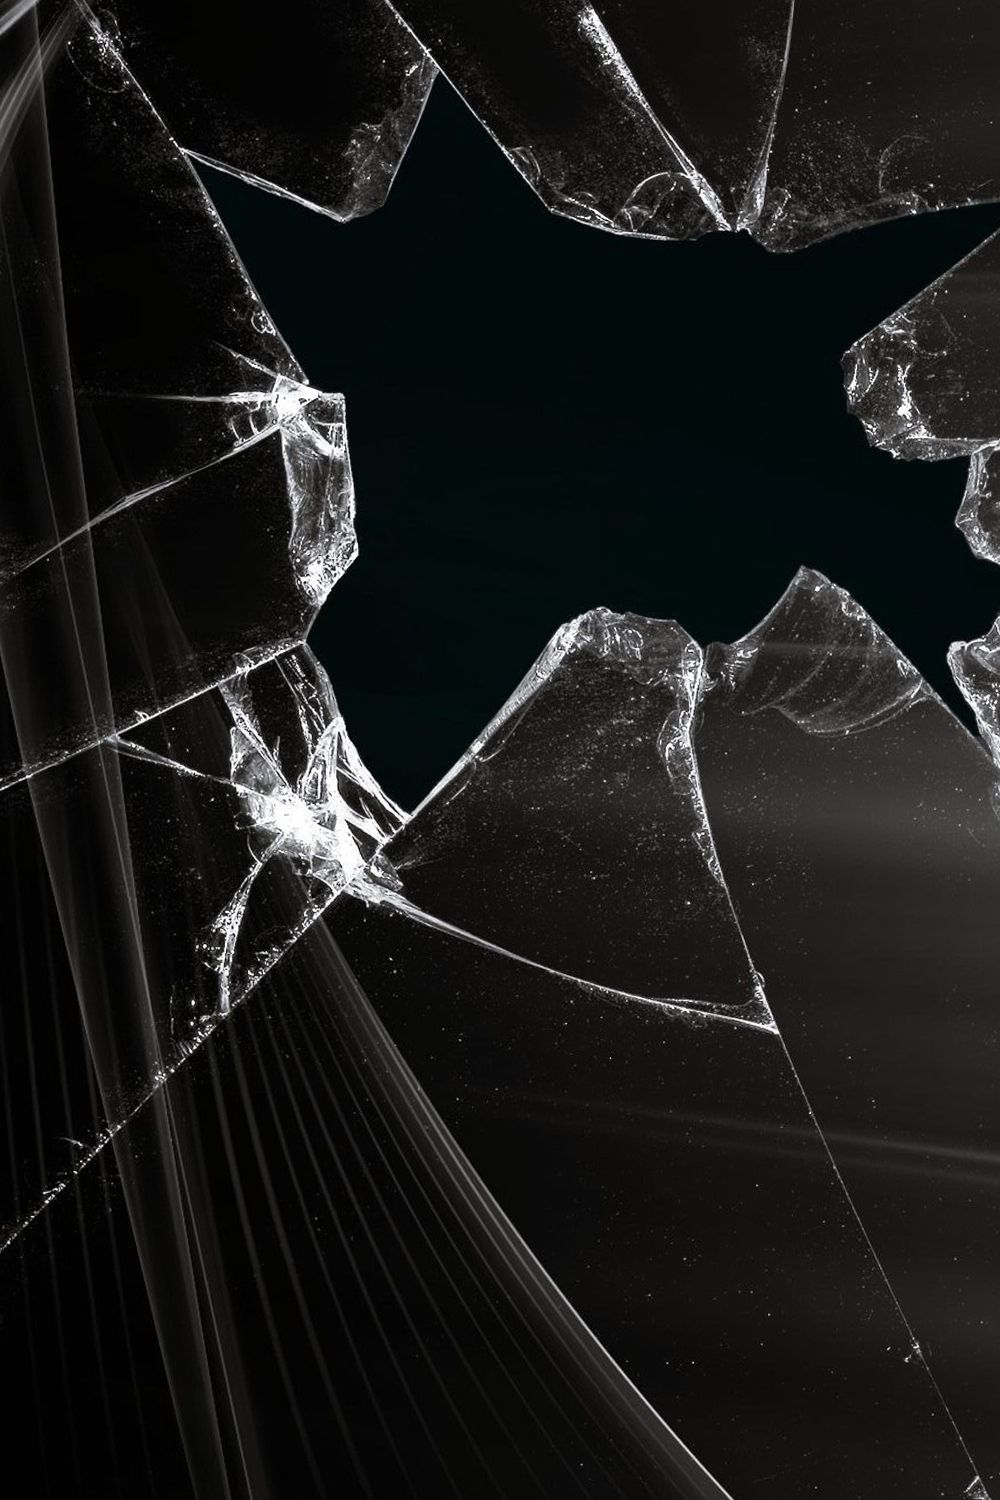 Best Broken Screen Wallpaper Hd Free Download In 2020 Broken